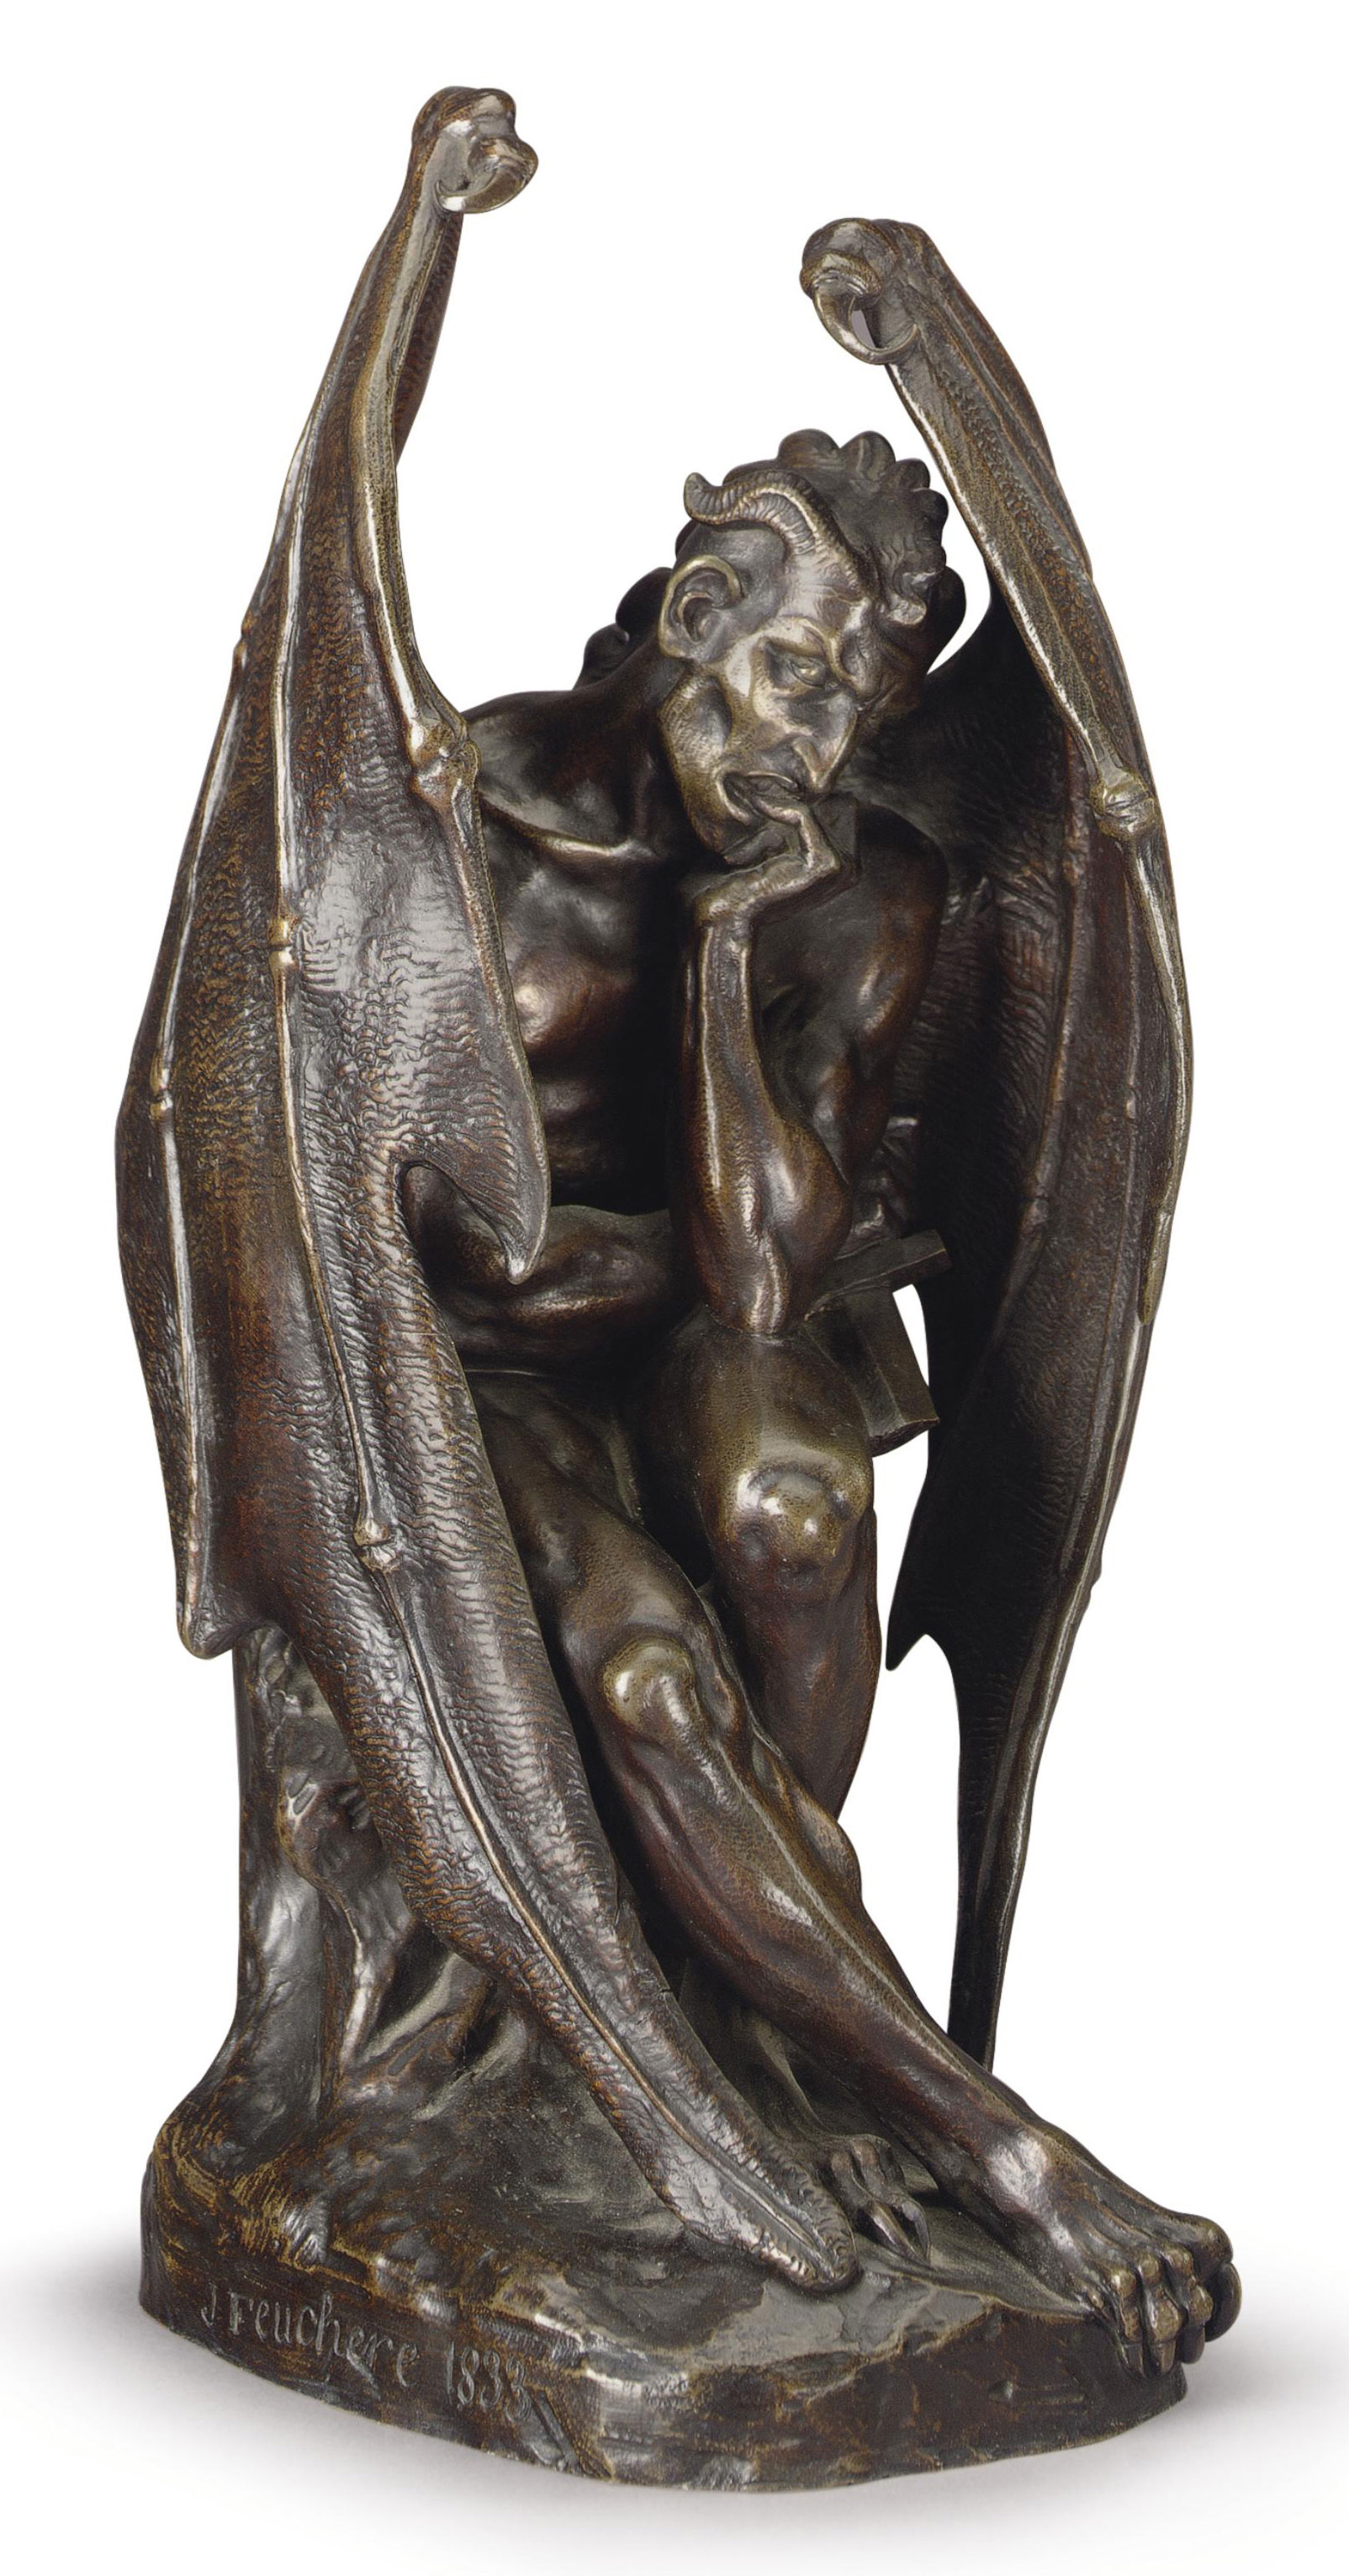 A FRENCH PATINATED BRONZE FIGURE OF MEPHISTOPHELES